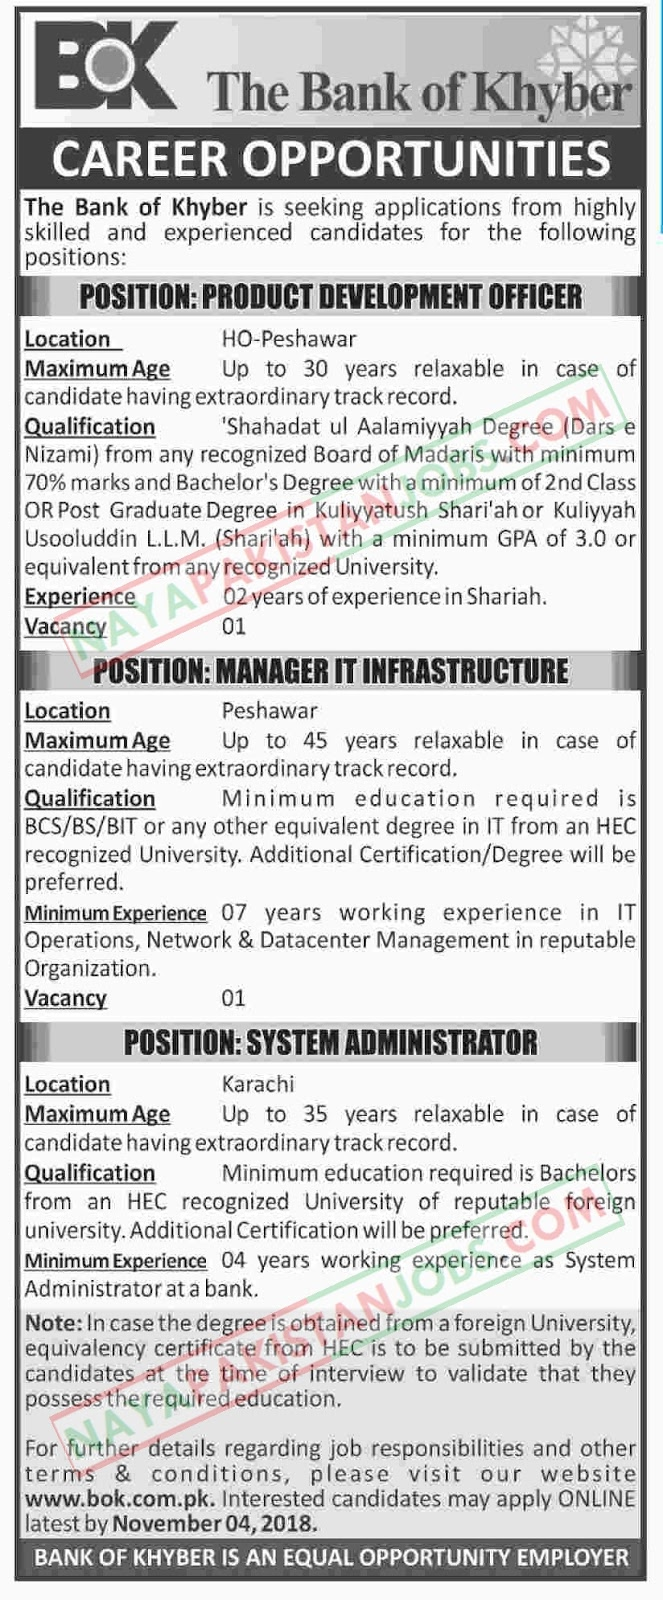 Latest Vacancies Announced in The Bank Of Khyber Jobs 22 October 2018 - Naya Pakistan